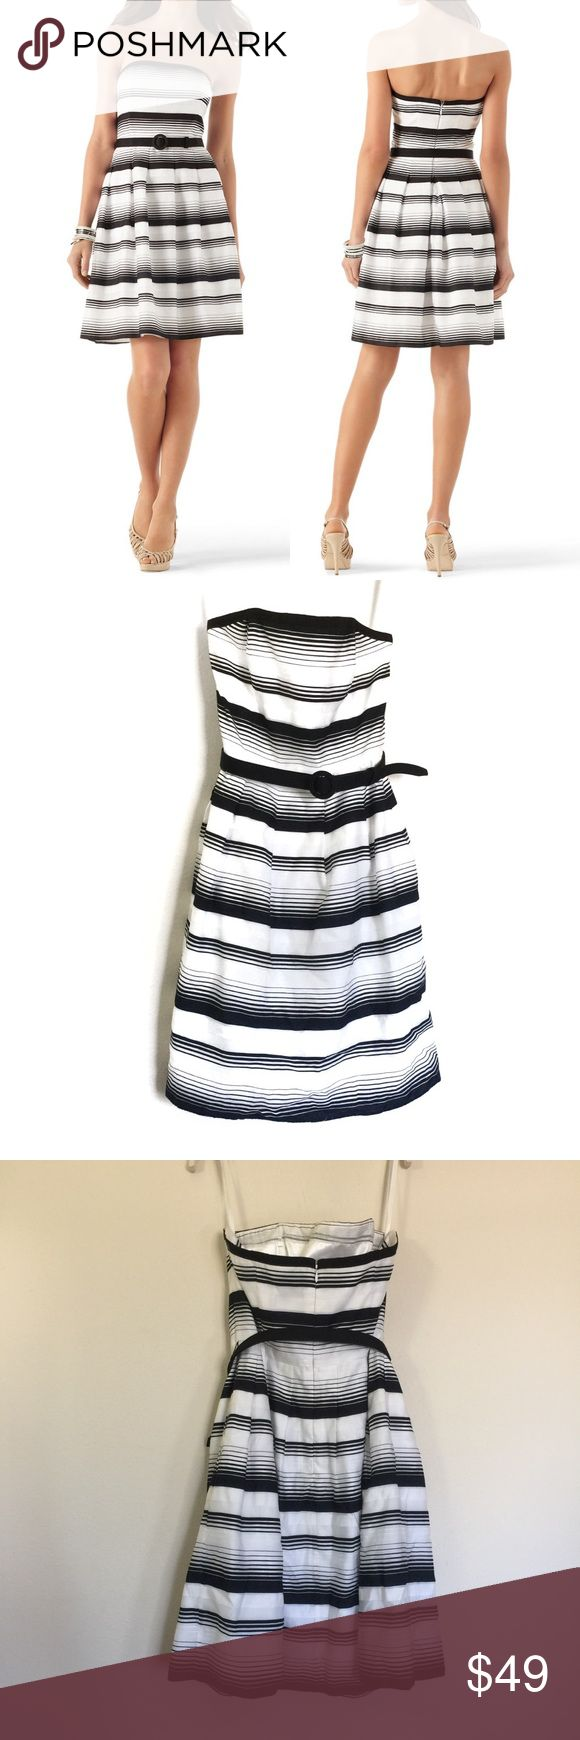 """WHBM black white """"Mod-Stripe Fit & Flare Dress"""" 6 WHBM black white """"Mod-Stripe Fit & Flare Dress"""", great condition. Strapless with belt. Pleated skirt, fully lined with lace trim petticoat. Back zip and hook closure, light boning in bodiece. Pit to pit 16.5"""", waist 14.5"""", length pit to hem 29"""". White House Black Market Dresses Strapless"""